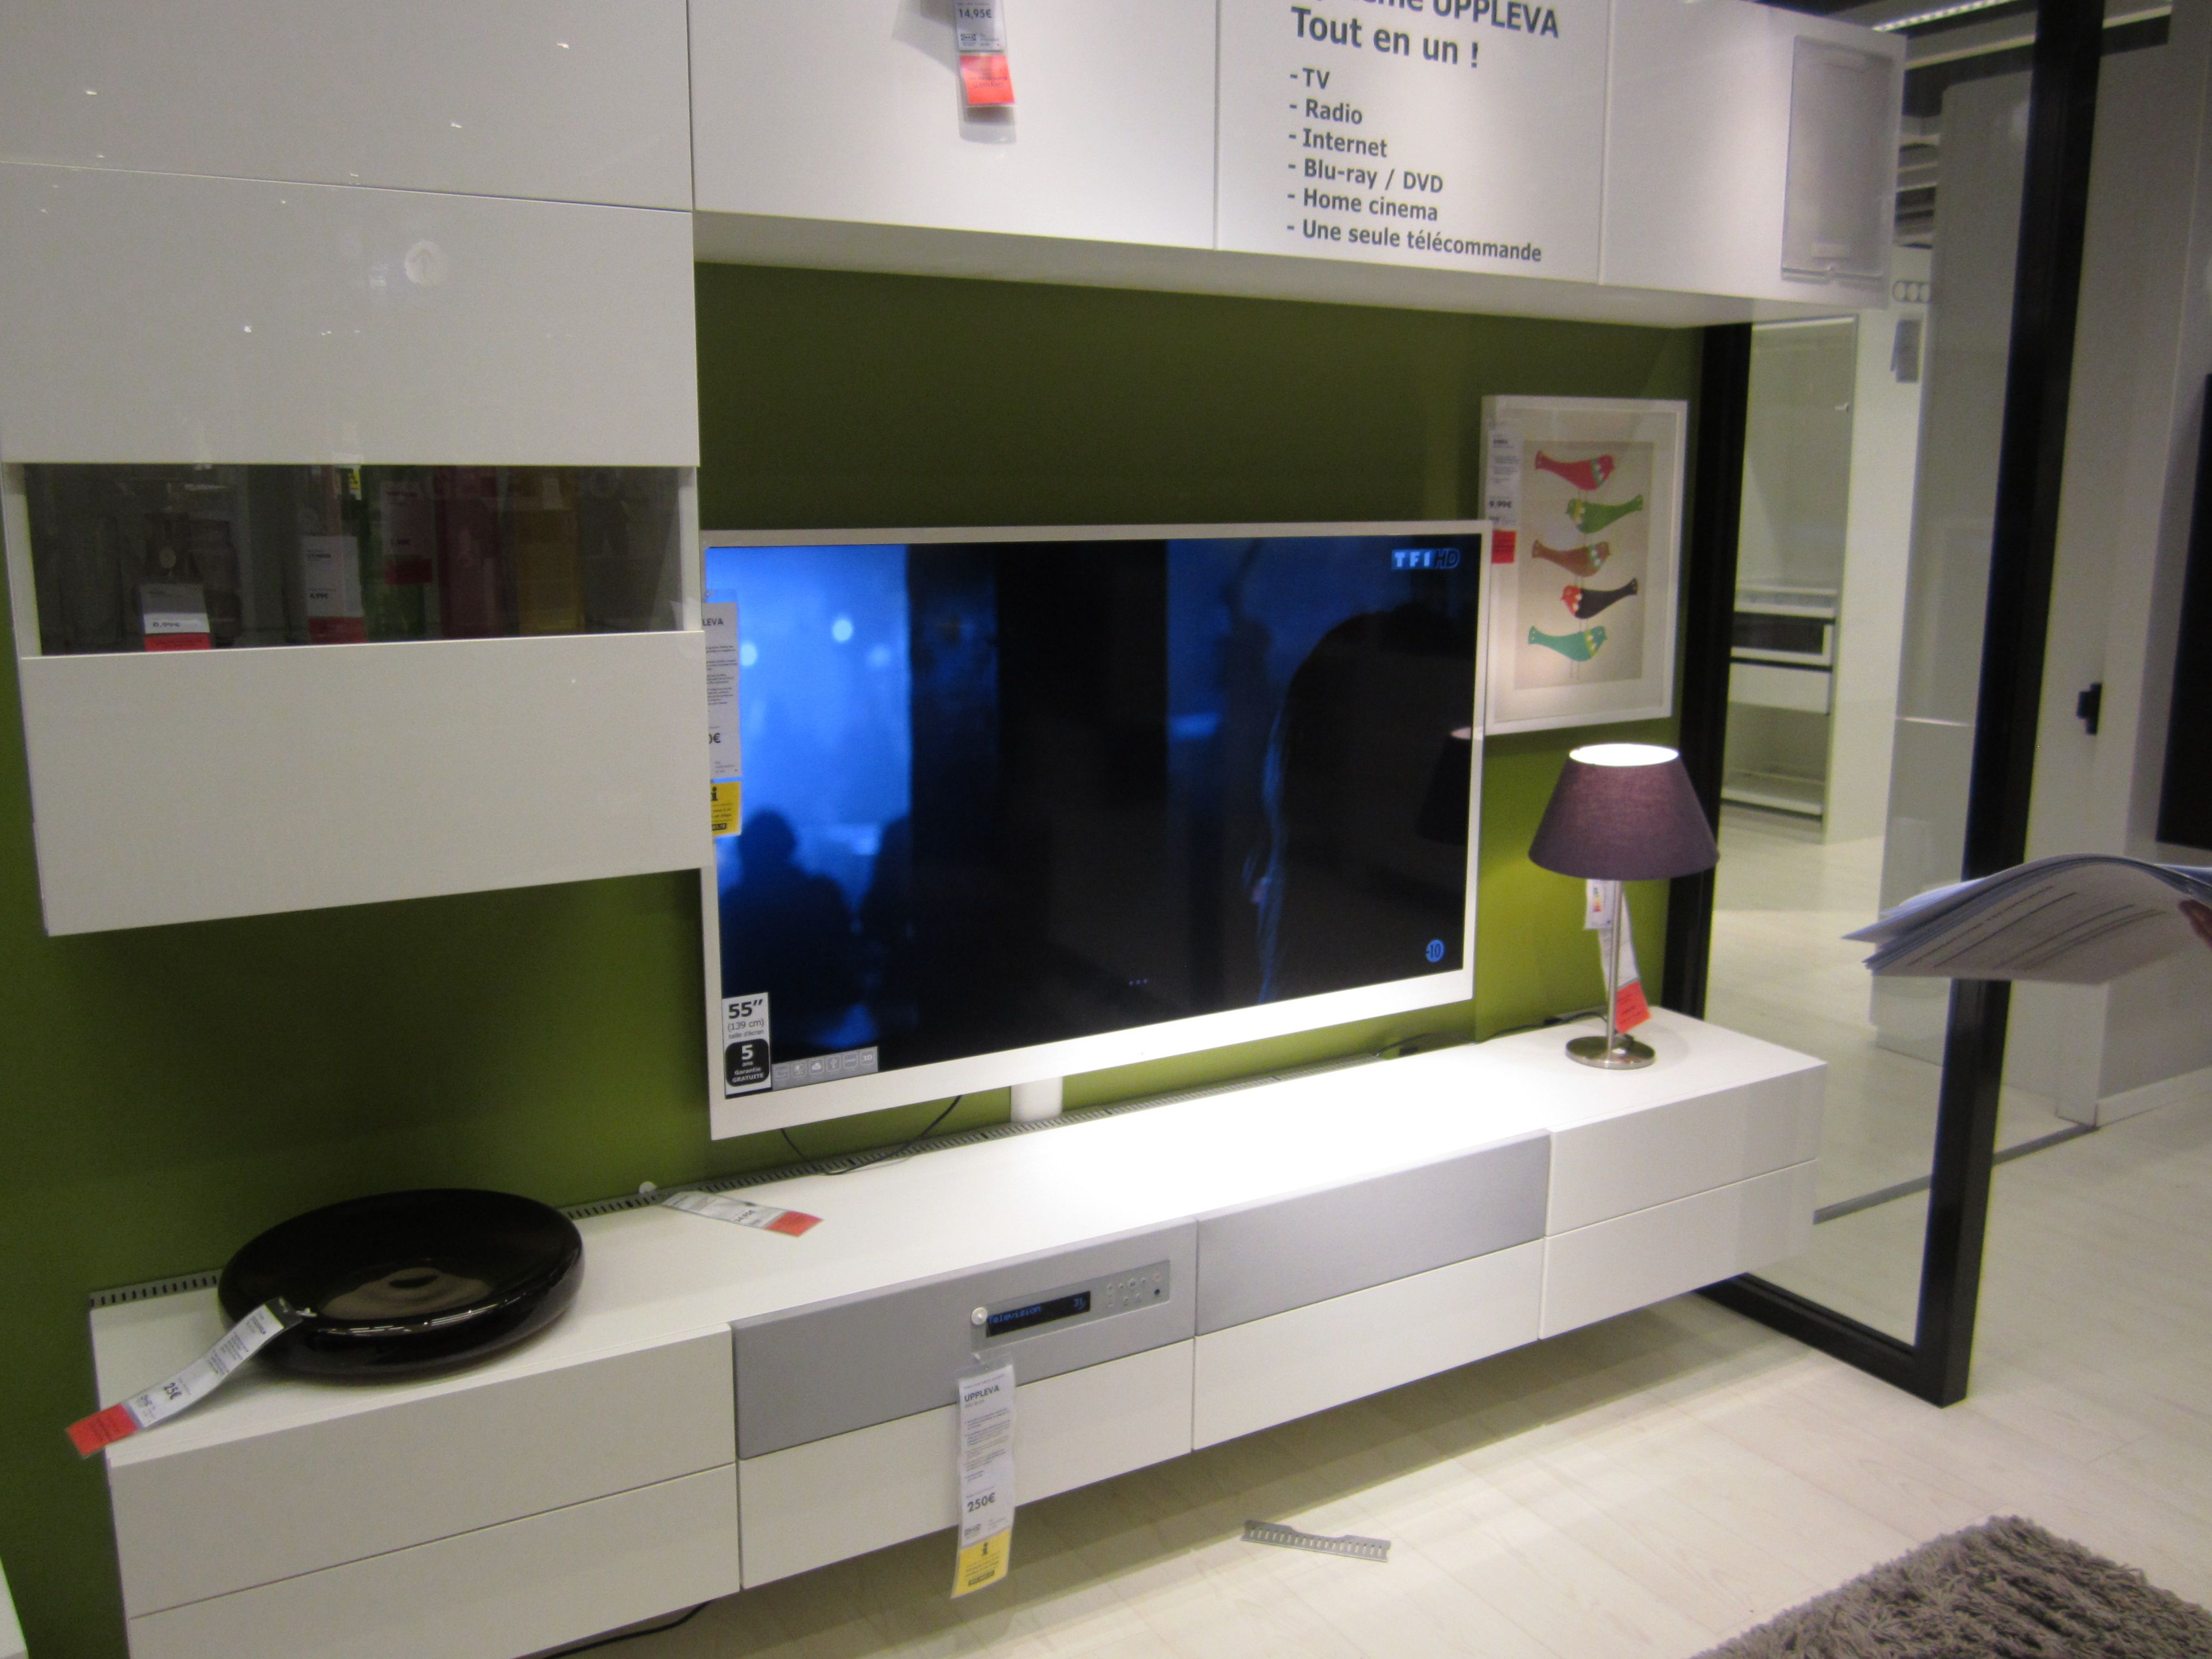 Meuble De Salon Suspendu Meuble Ikea Tv Suspendu Uppleva Salon Pinterest Home